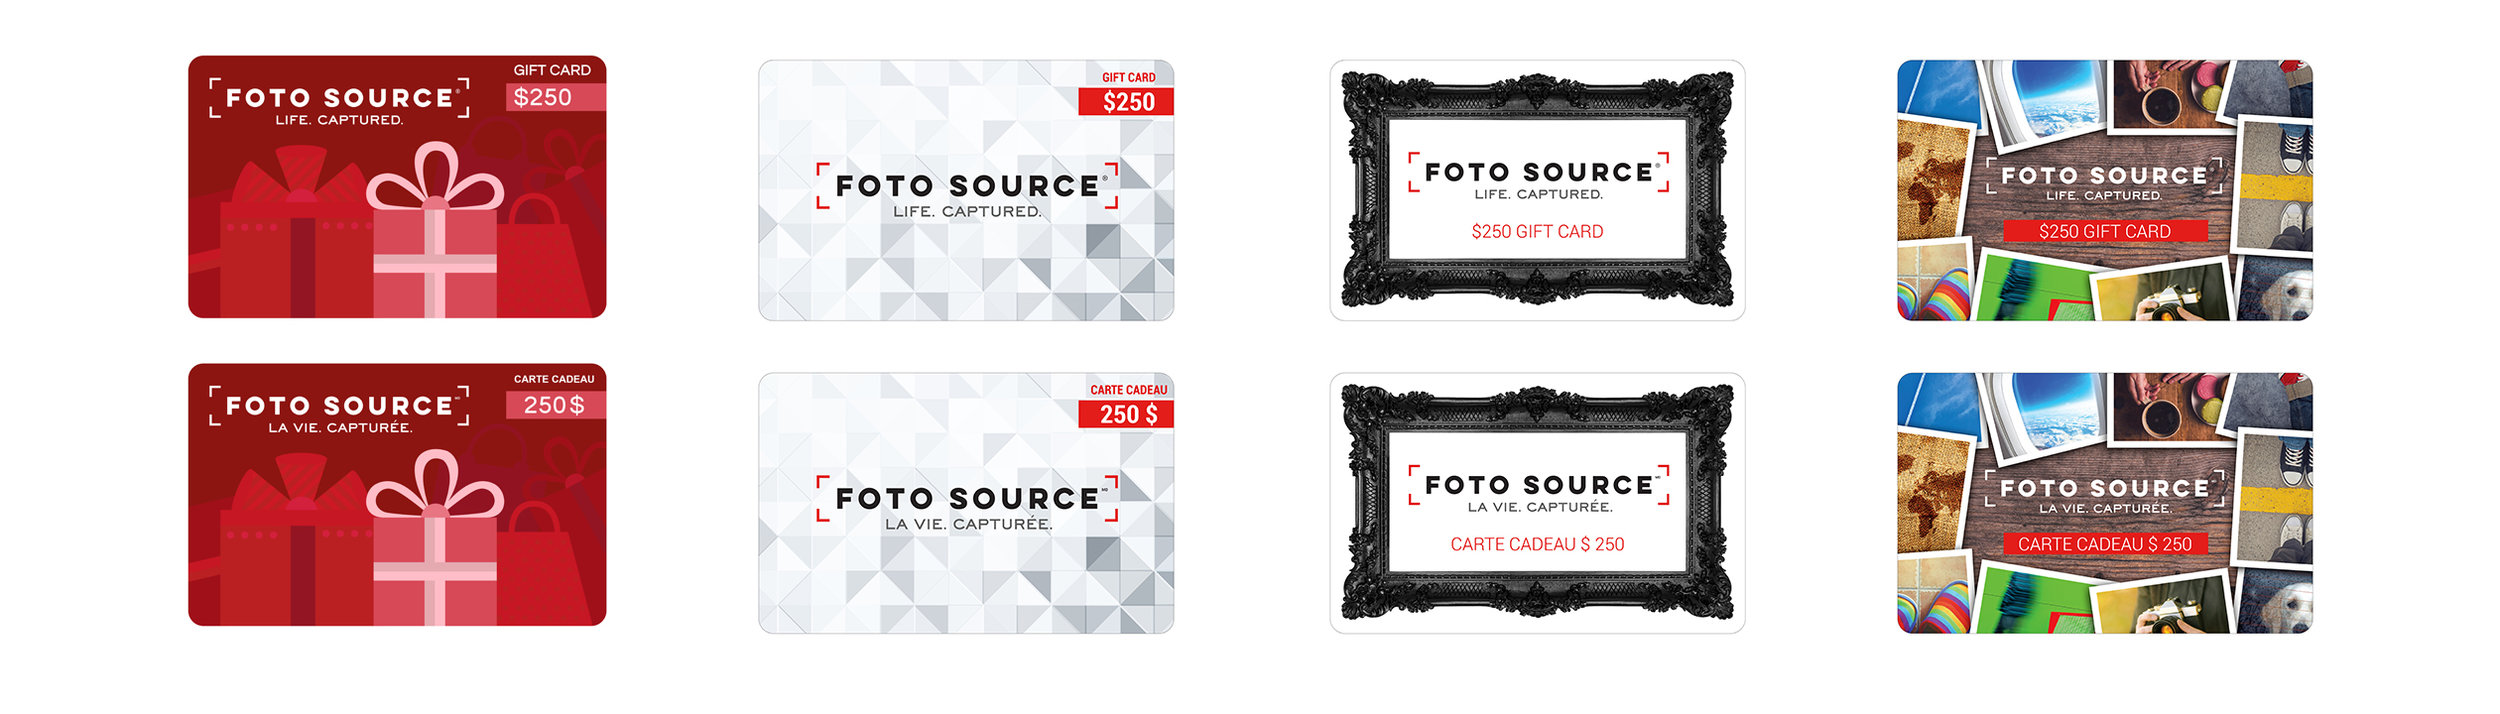 Foto Source Gift Card Designs